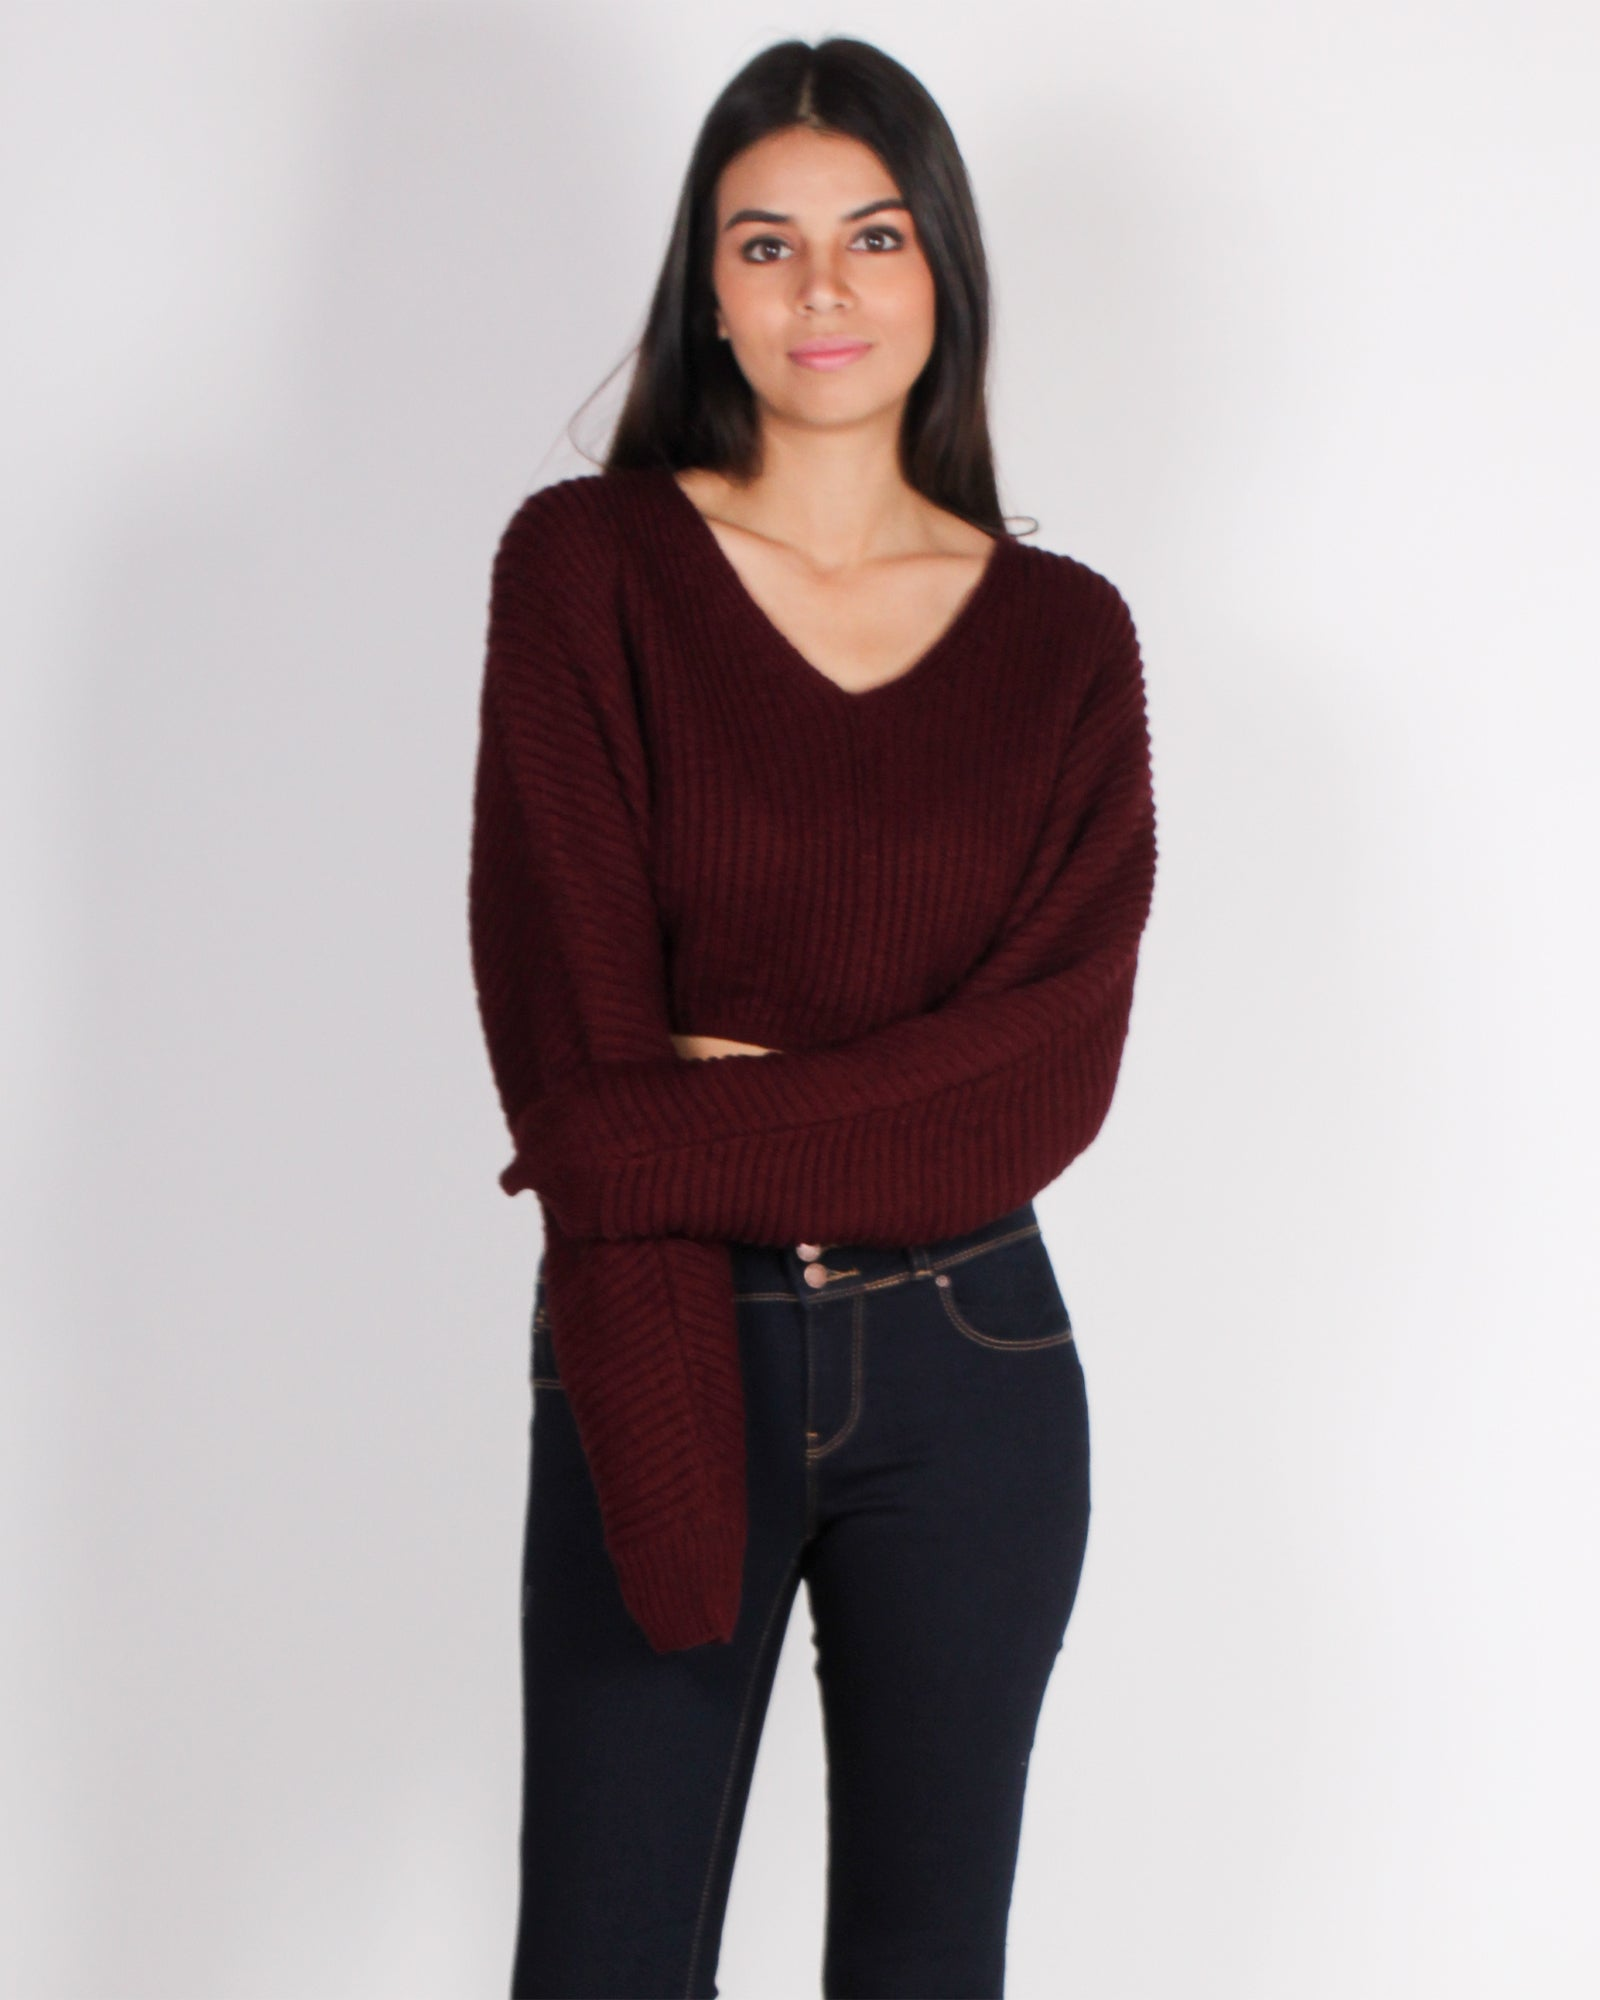 Fashion Q Shop Q License to Chill Crop Knit Sweater (Burgundy) SW10764